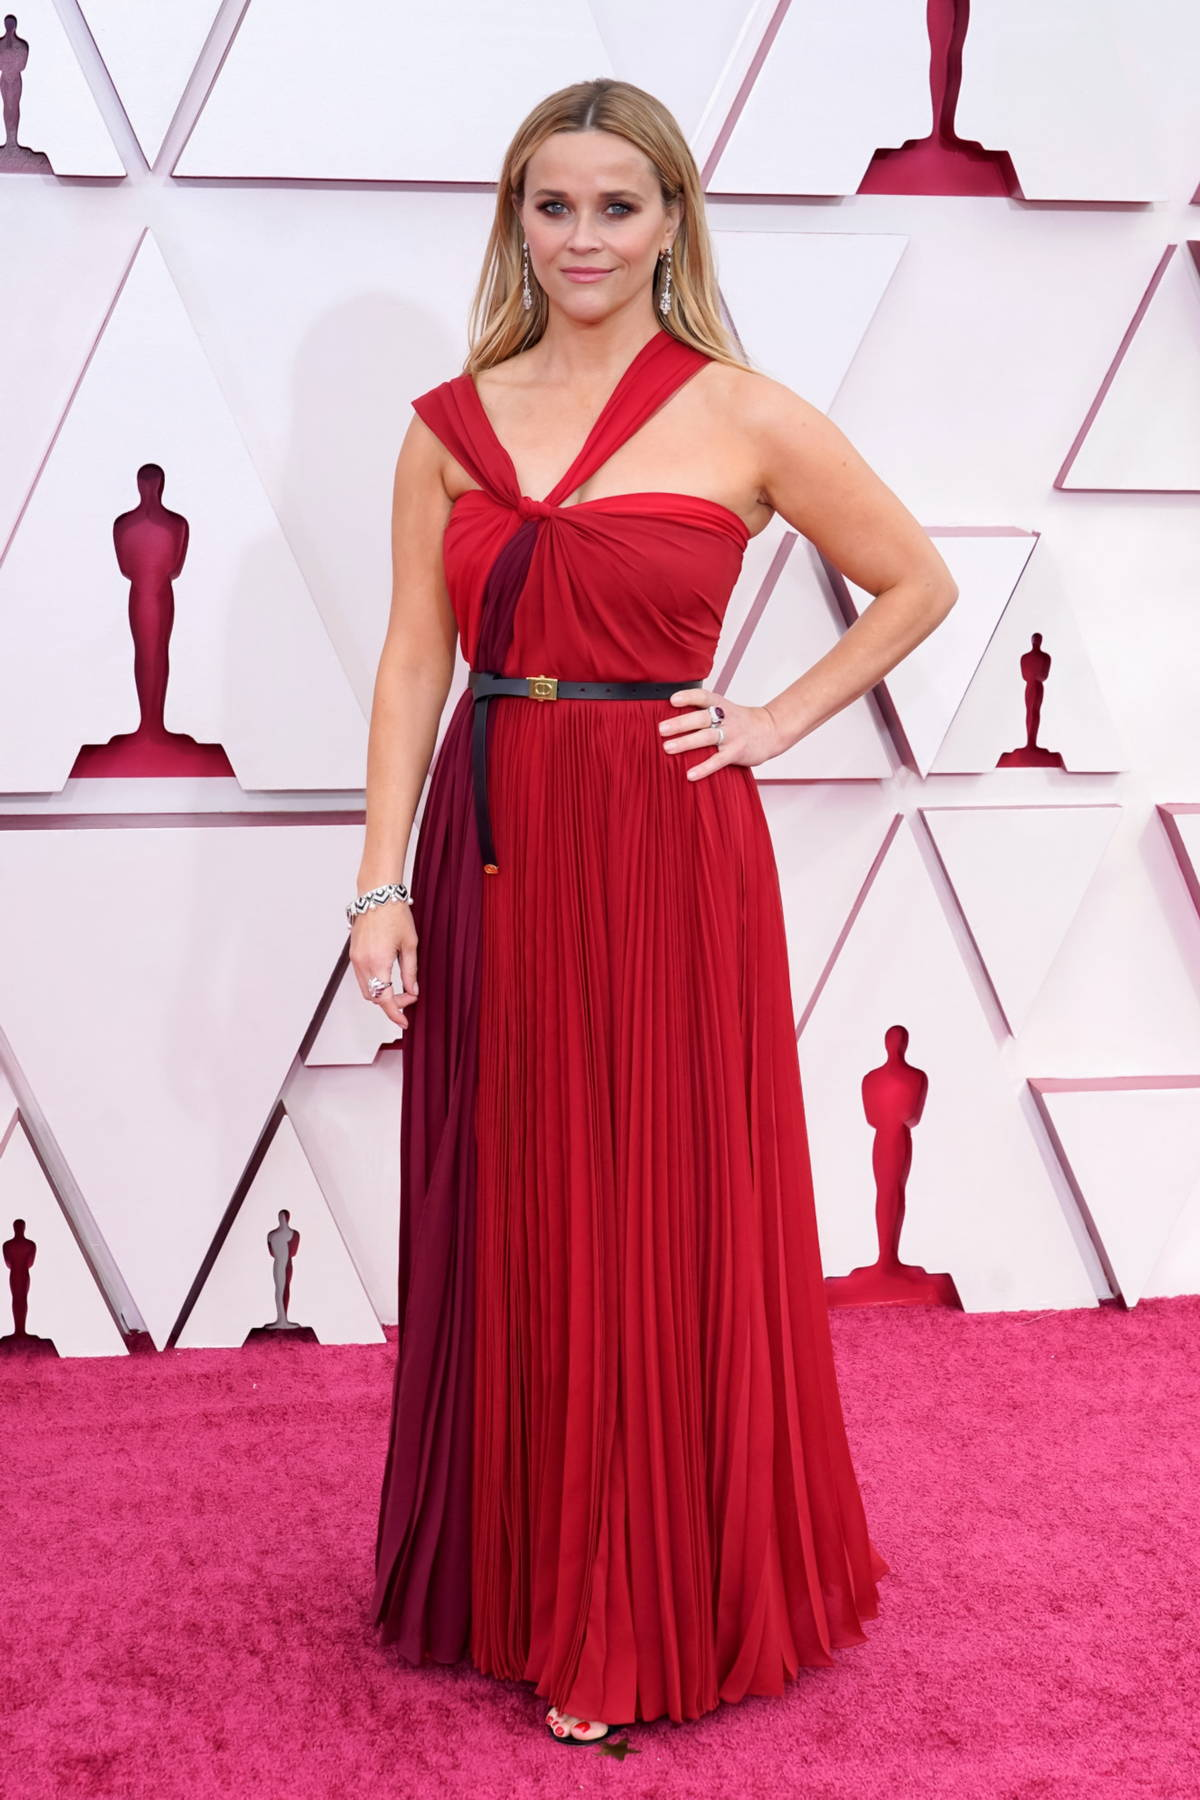 Reese Witherspoon attends the 93rd Annual Academy Awards at Union Station in Los Angeles